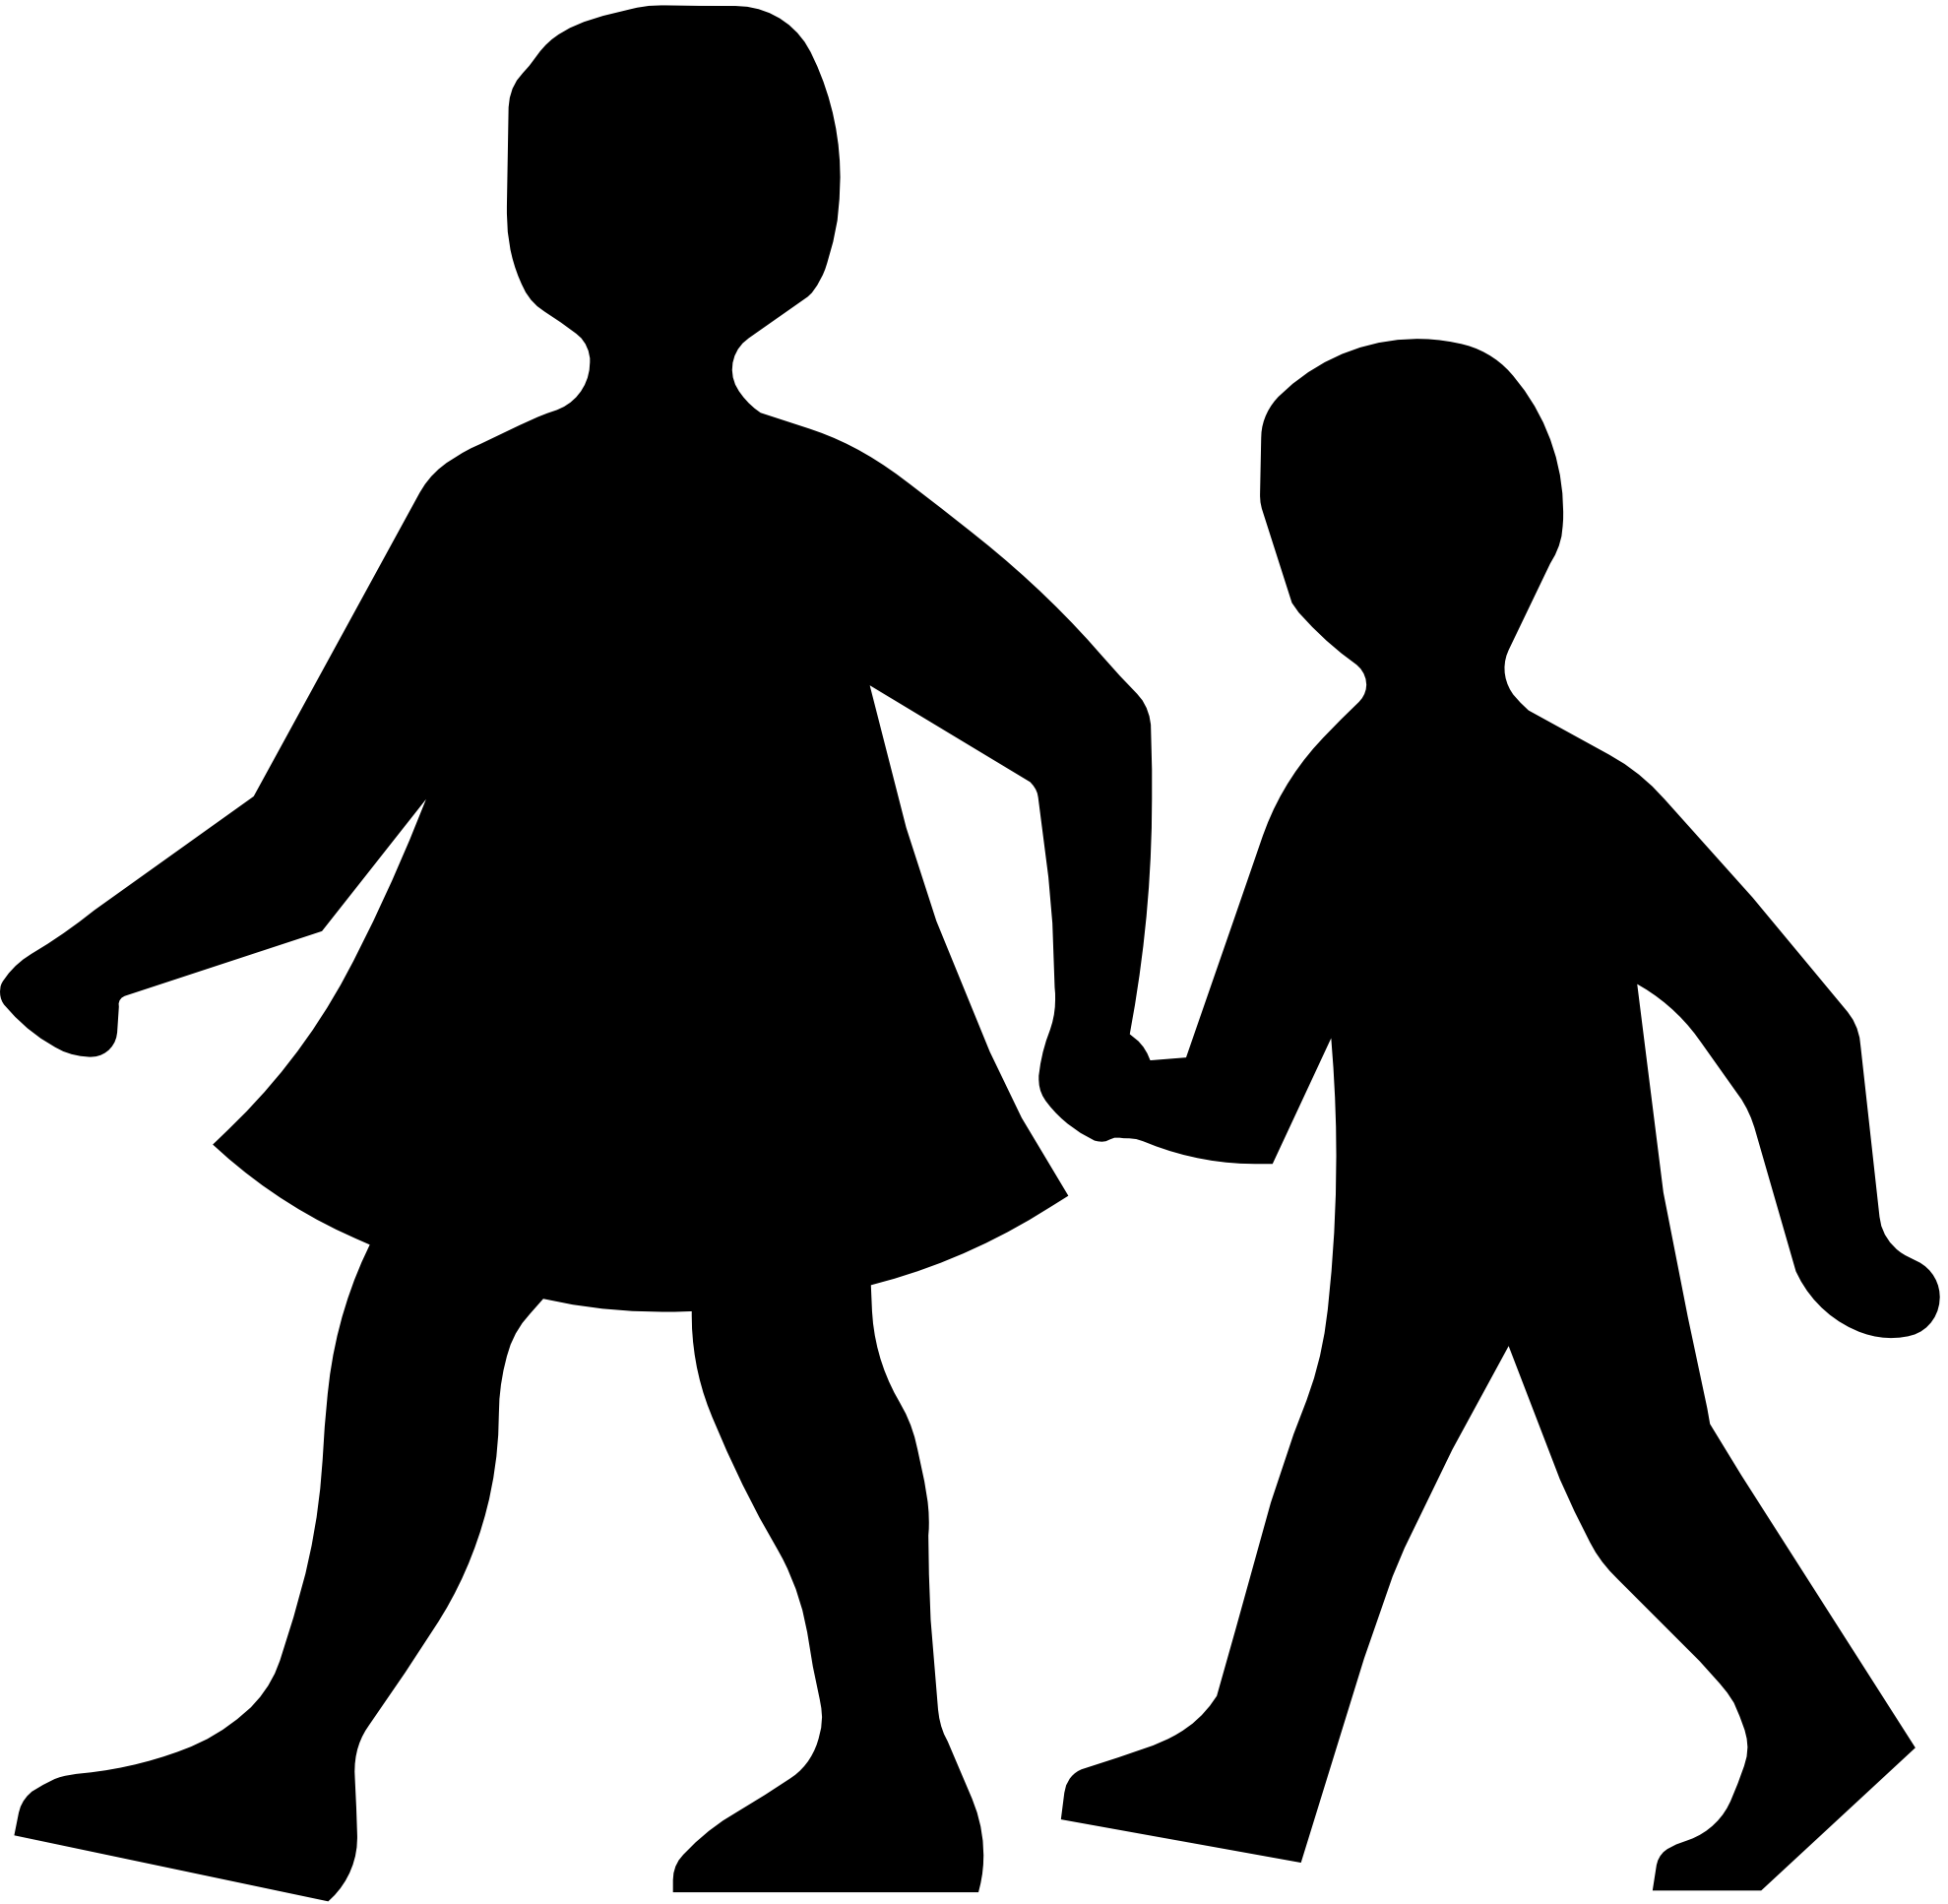 Maid clipart kid. Silhouette of kids playing